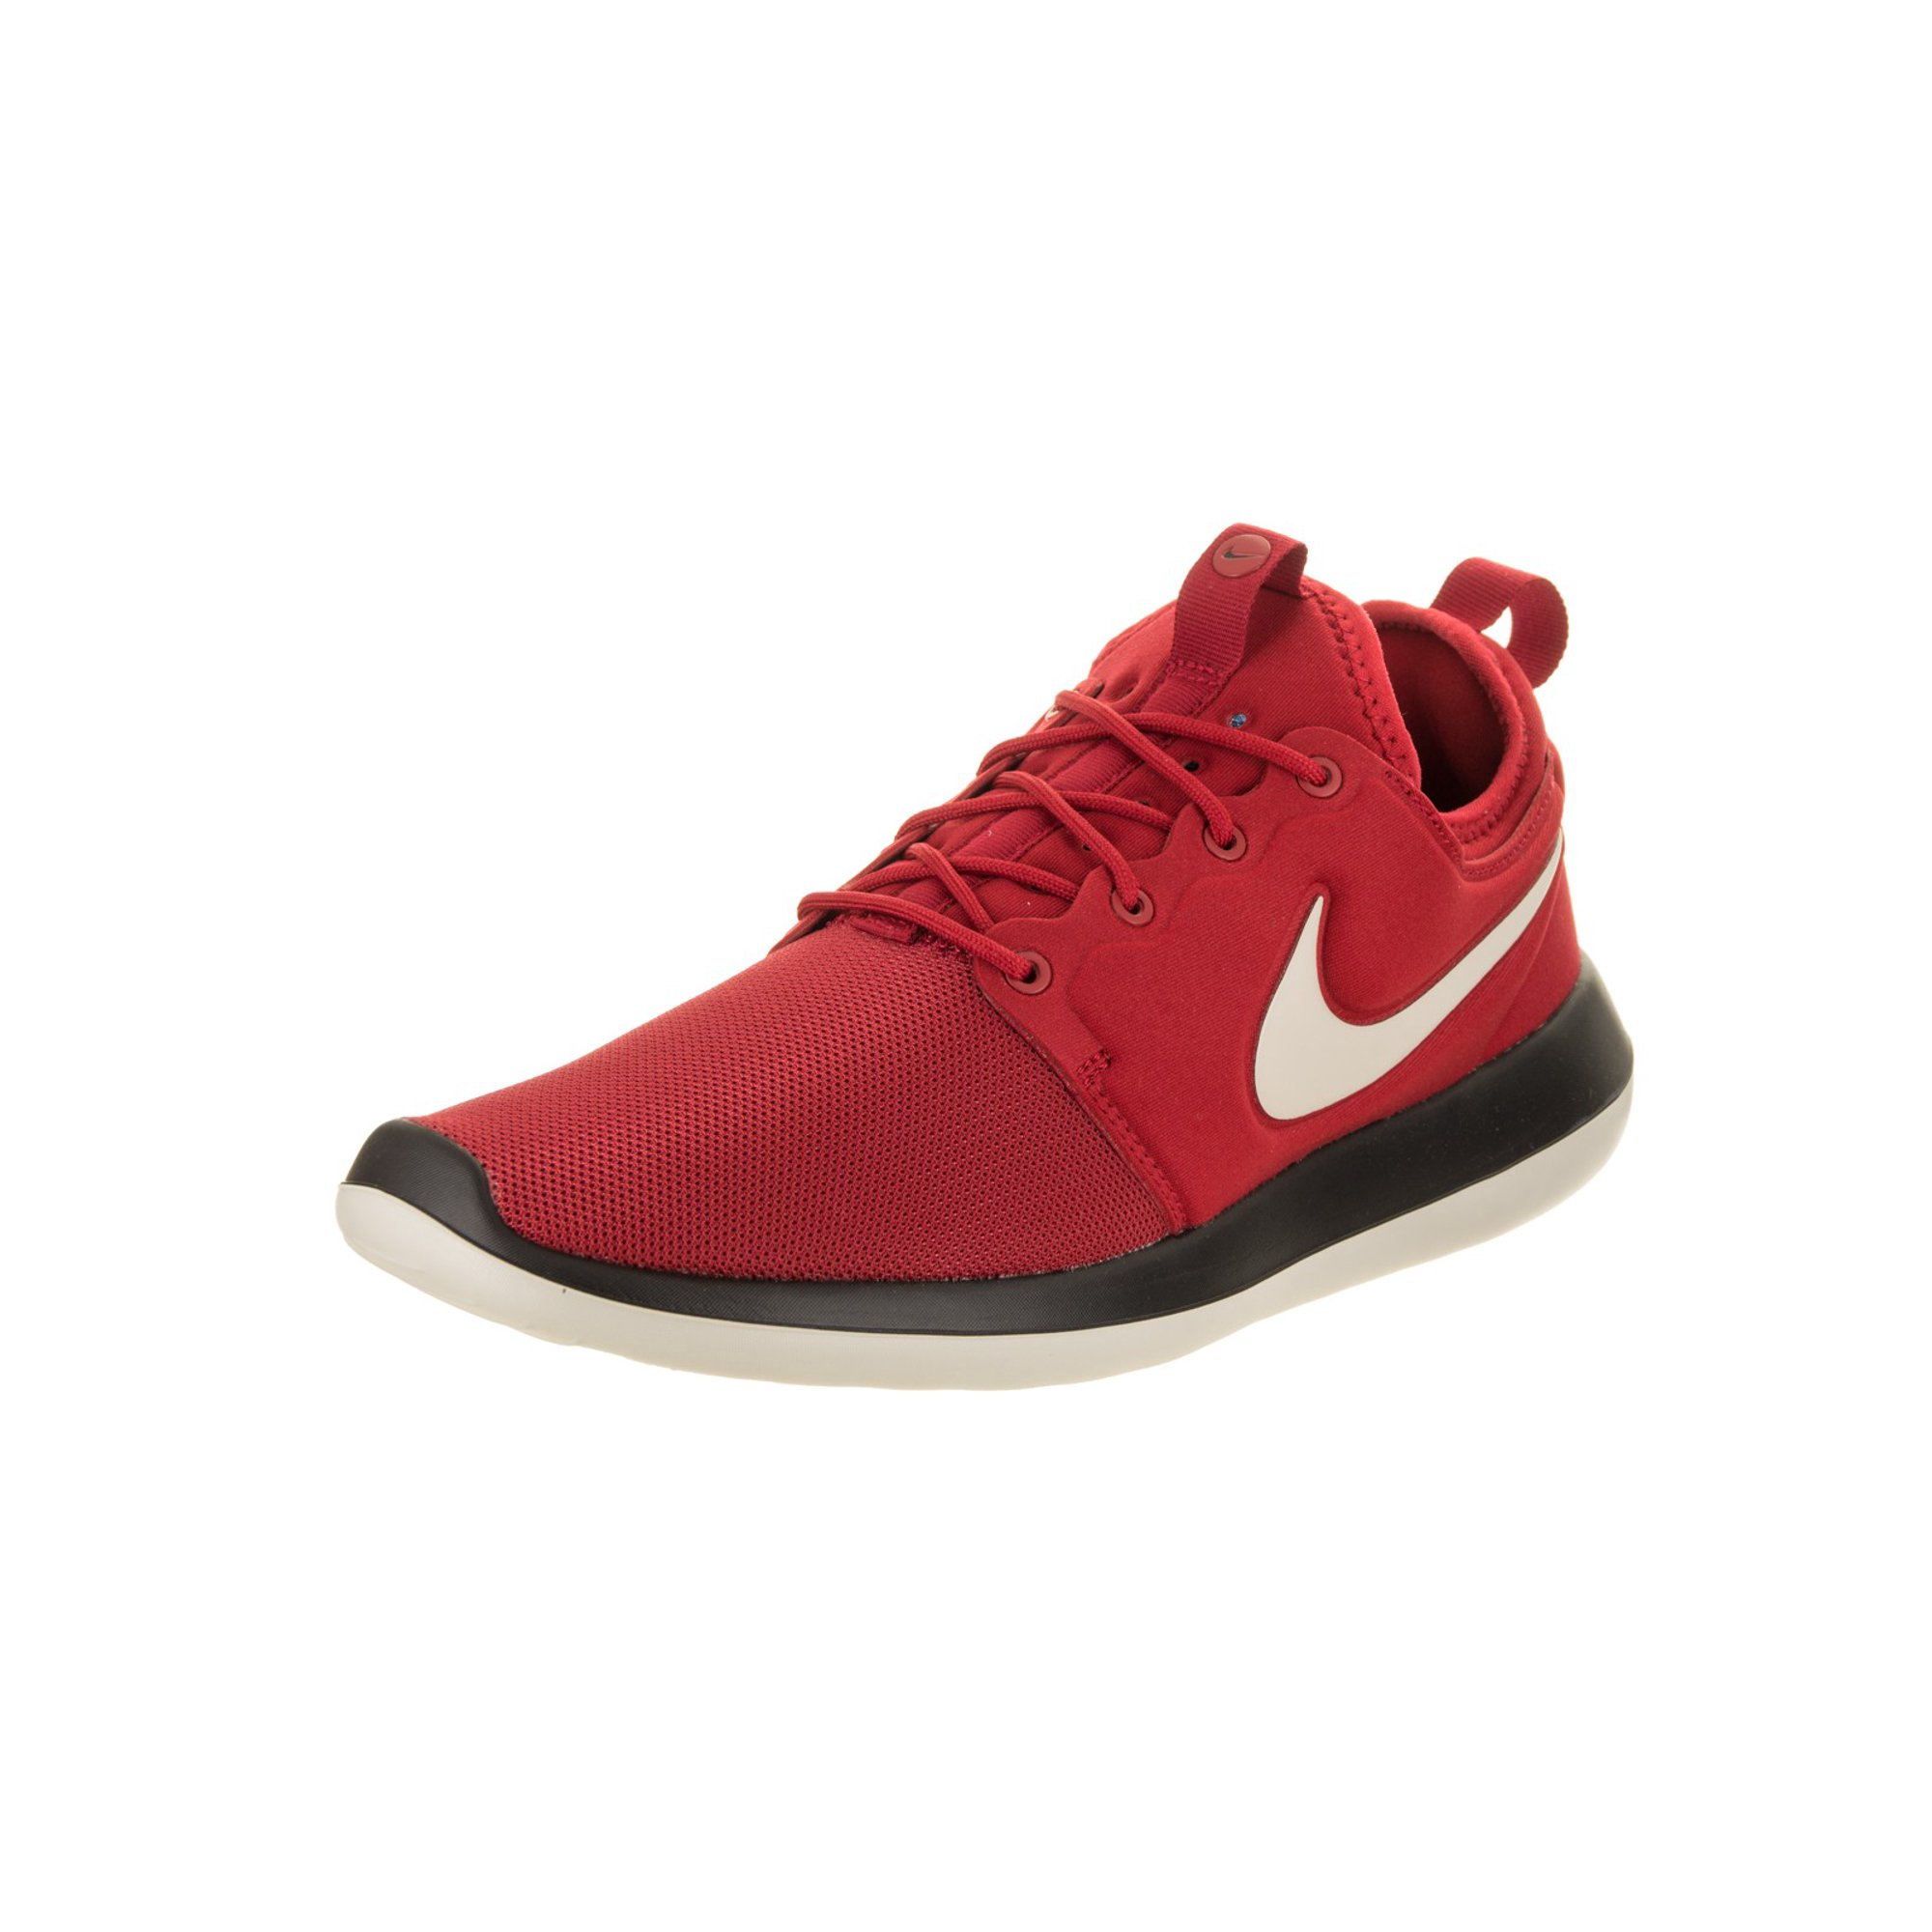 quality design 7c002 6b4fa Nike Men's Roshe Two Running Shoe